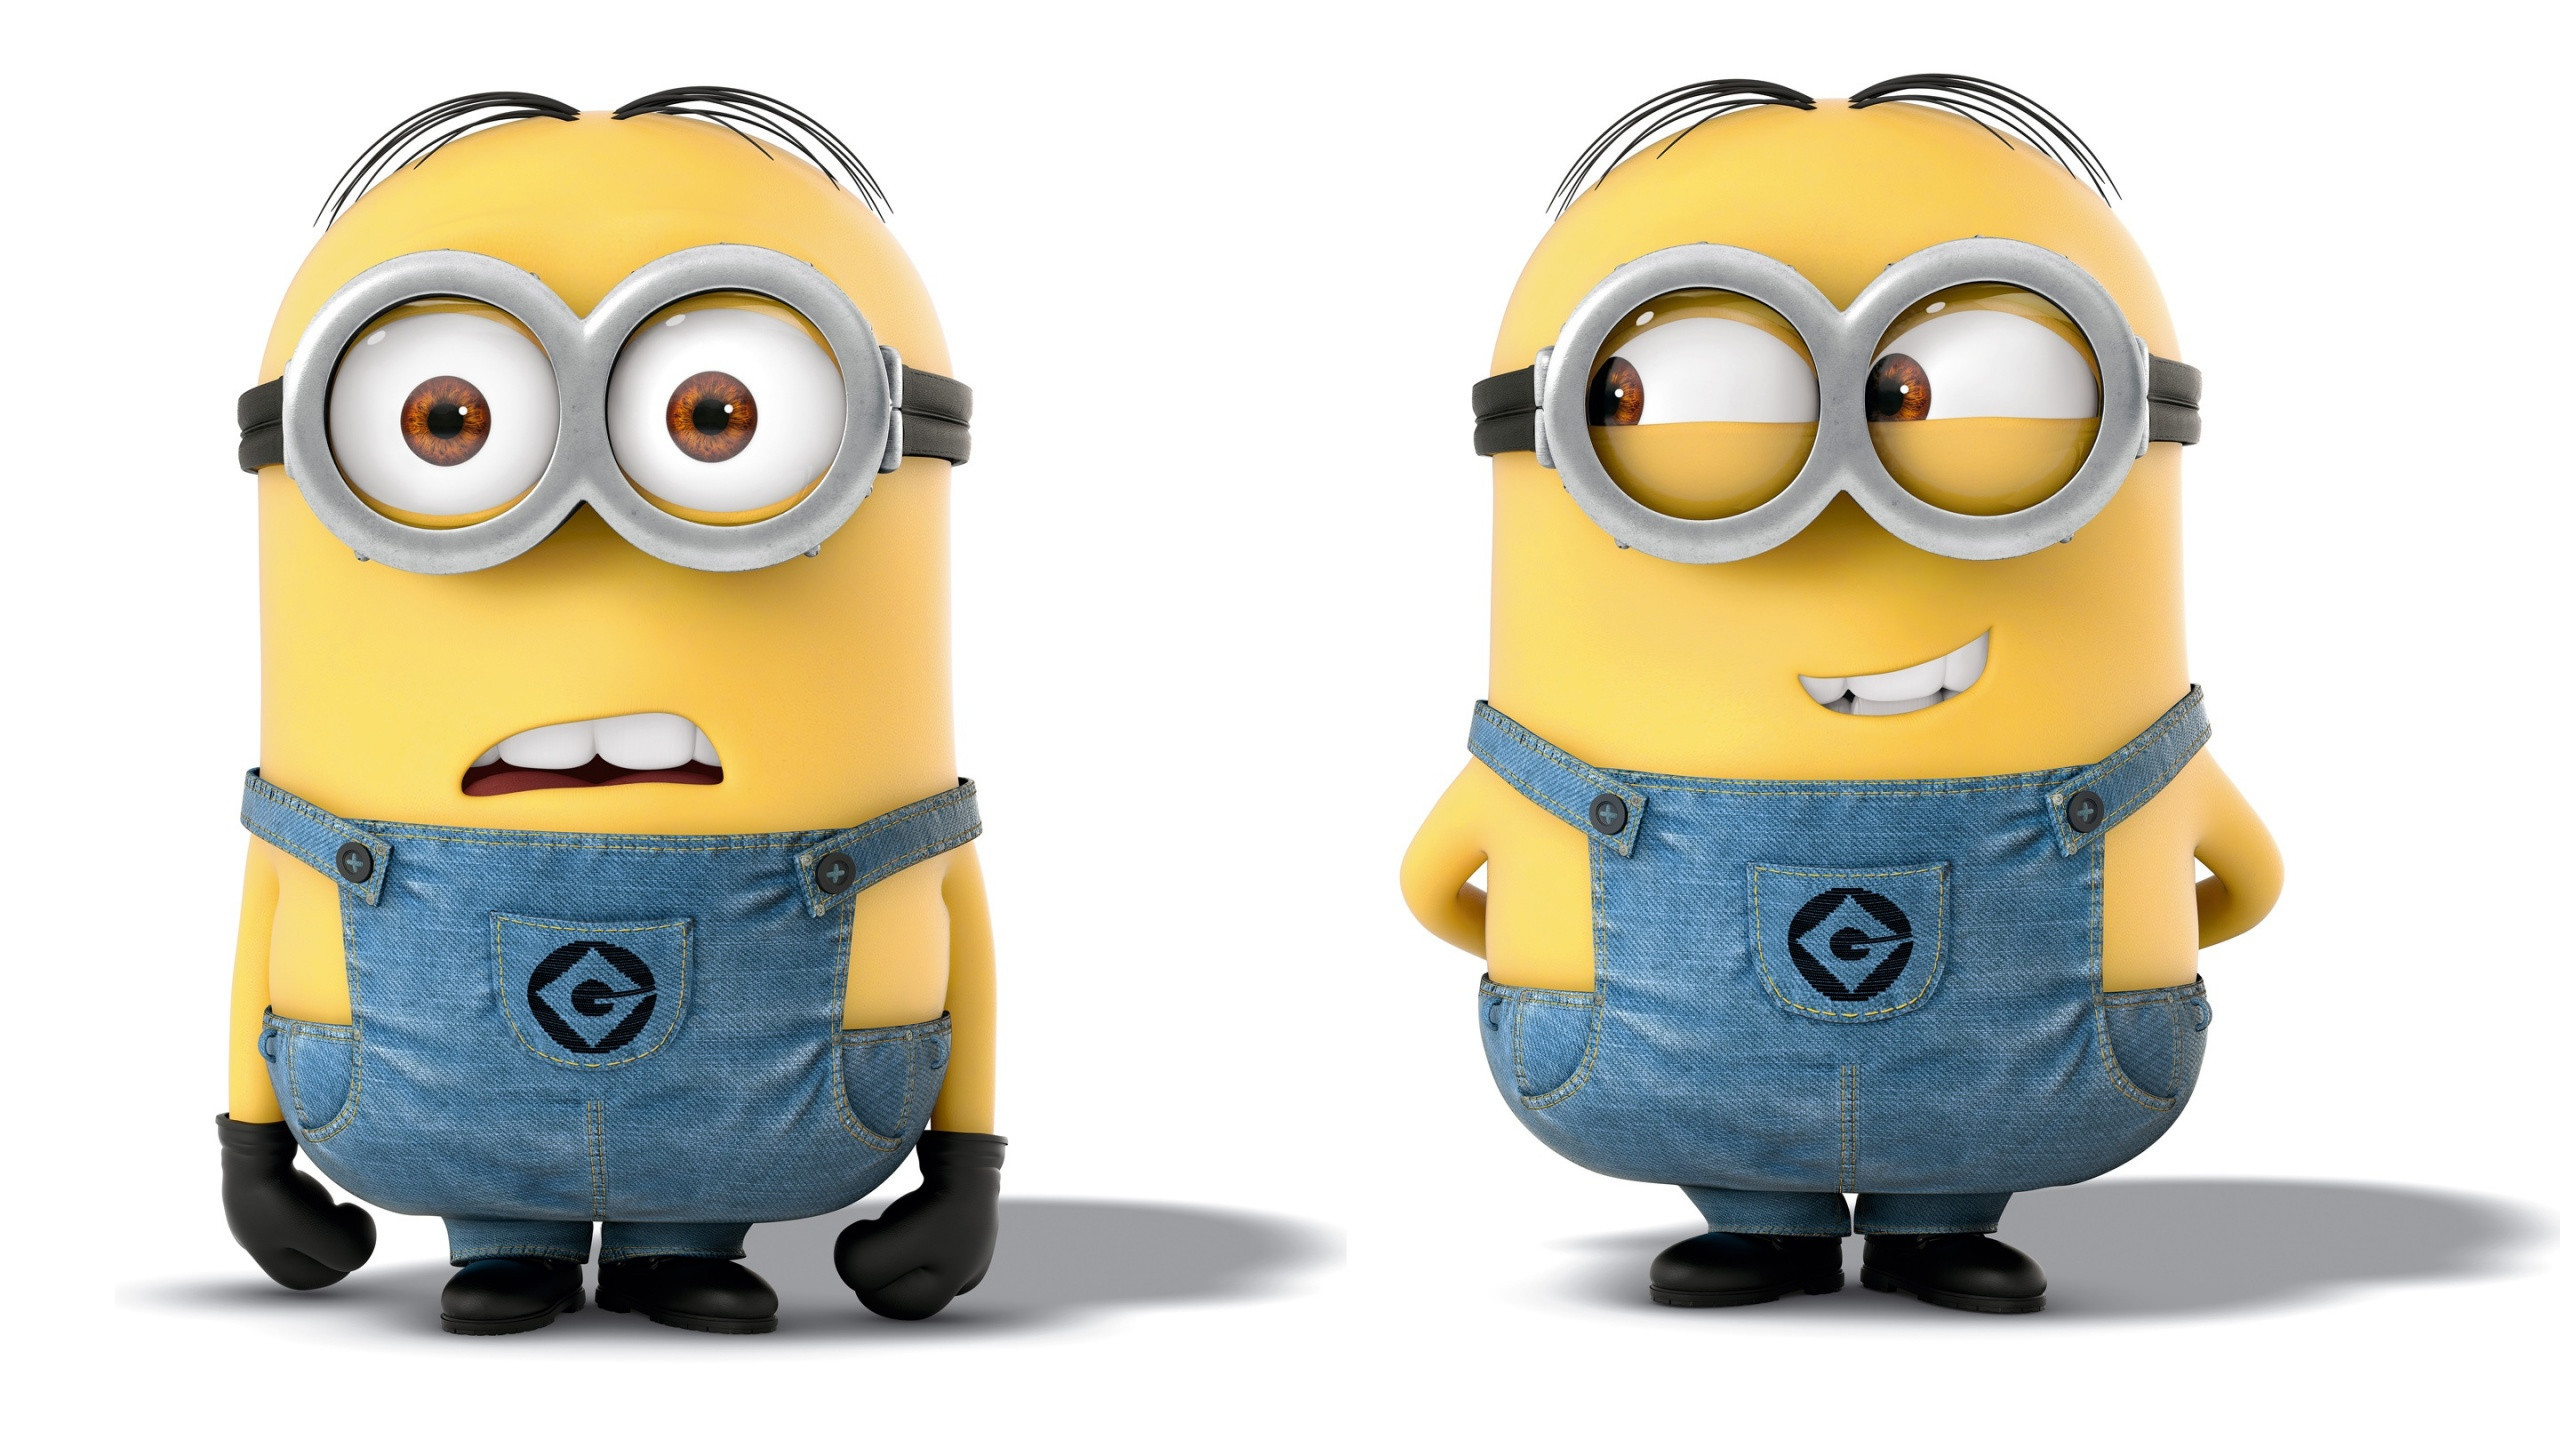 2560x1440 Minion iPhone Wallpaper HD